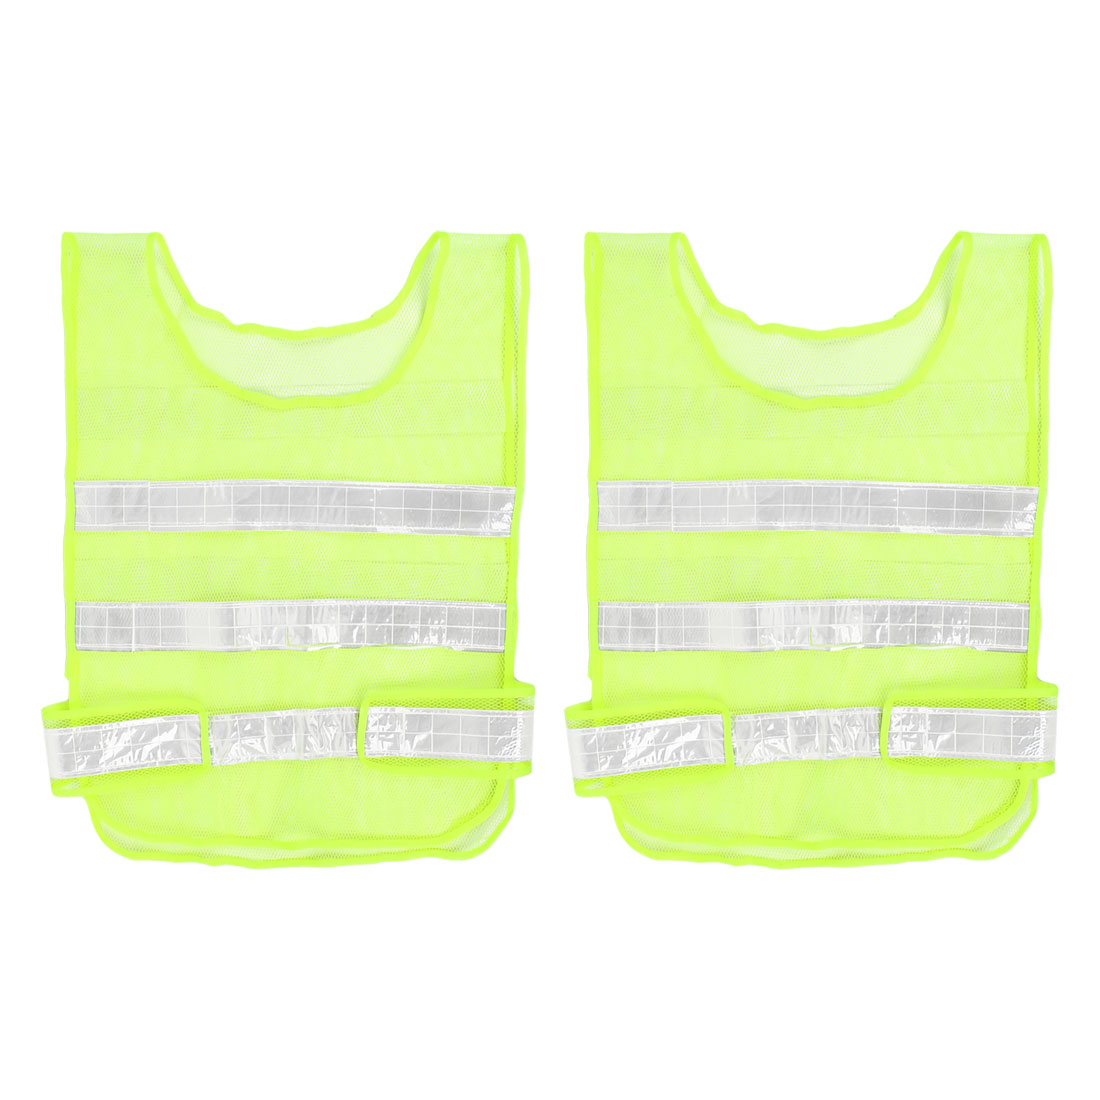 Reflective Meshy Style Traffic Safety Security Vest 57cm x 40cm 2pcs